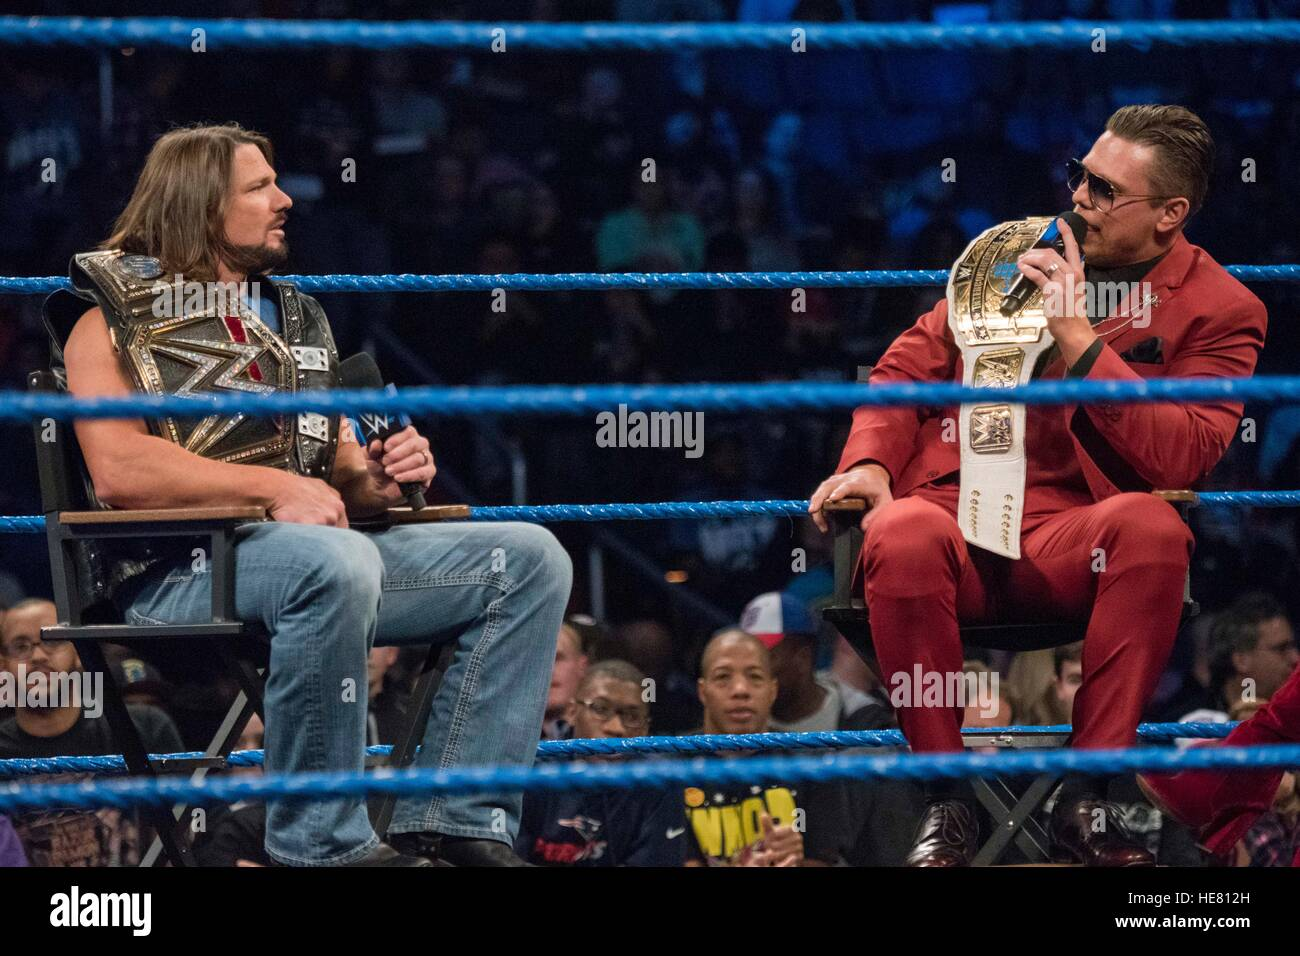 WWE performers AJ Styles (left) and The Miz talk in the ring before a wrestling match for the 14th Annual Tribute - Stock Image